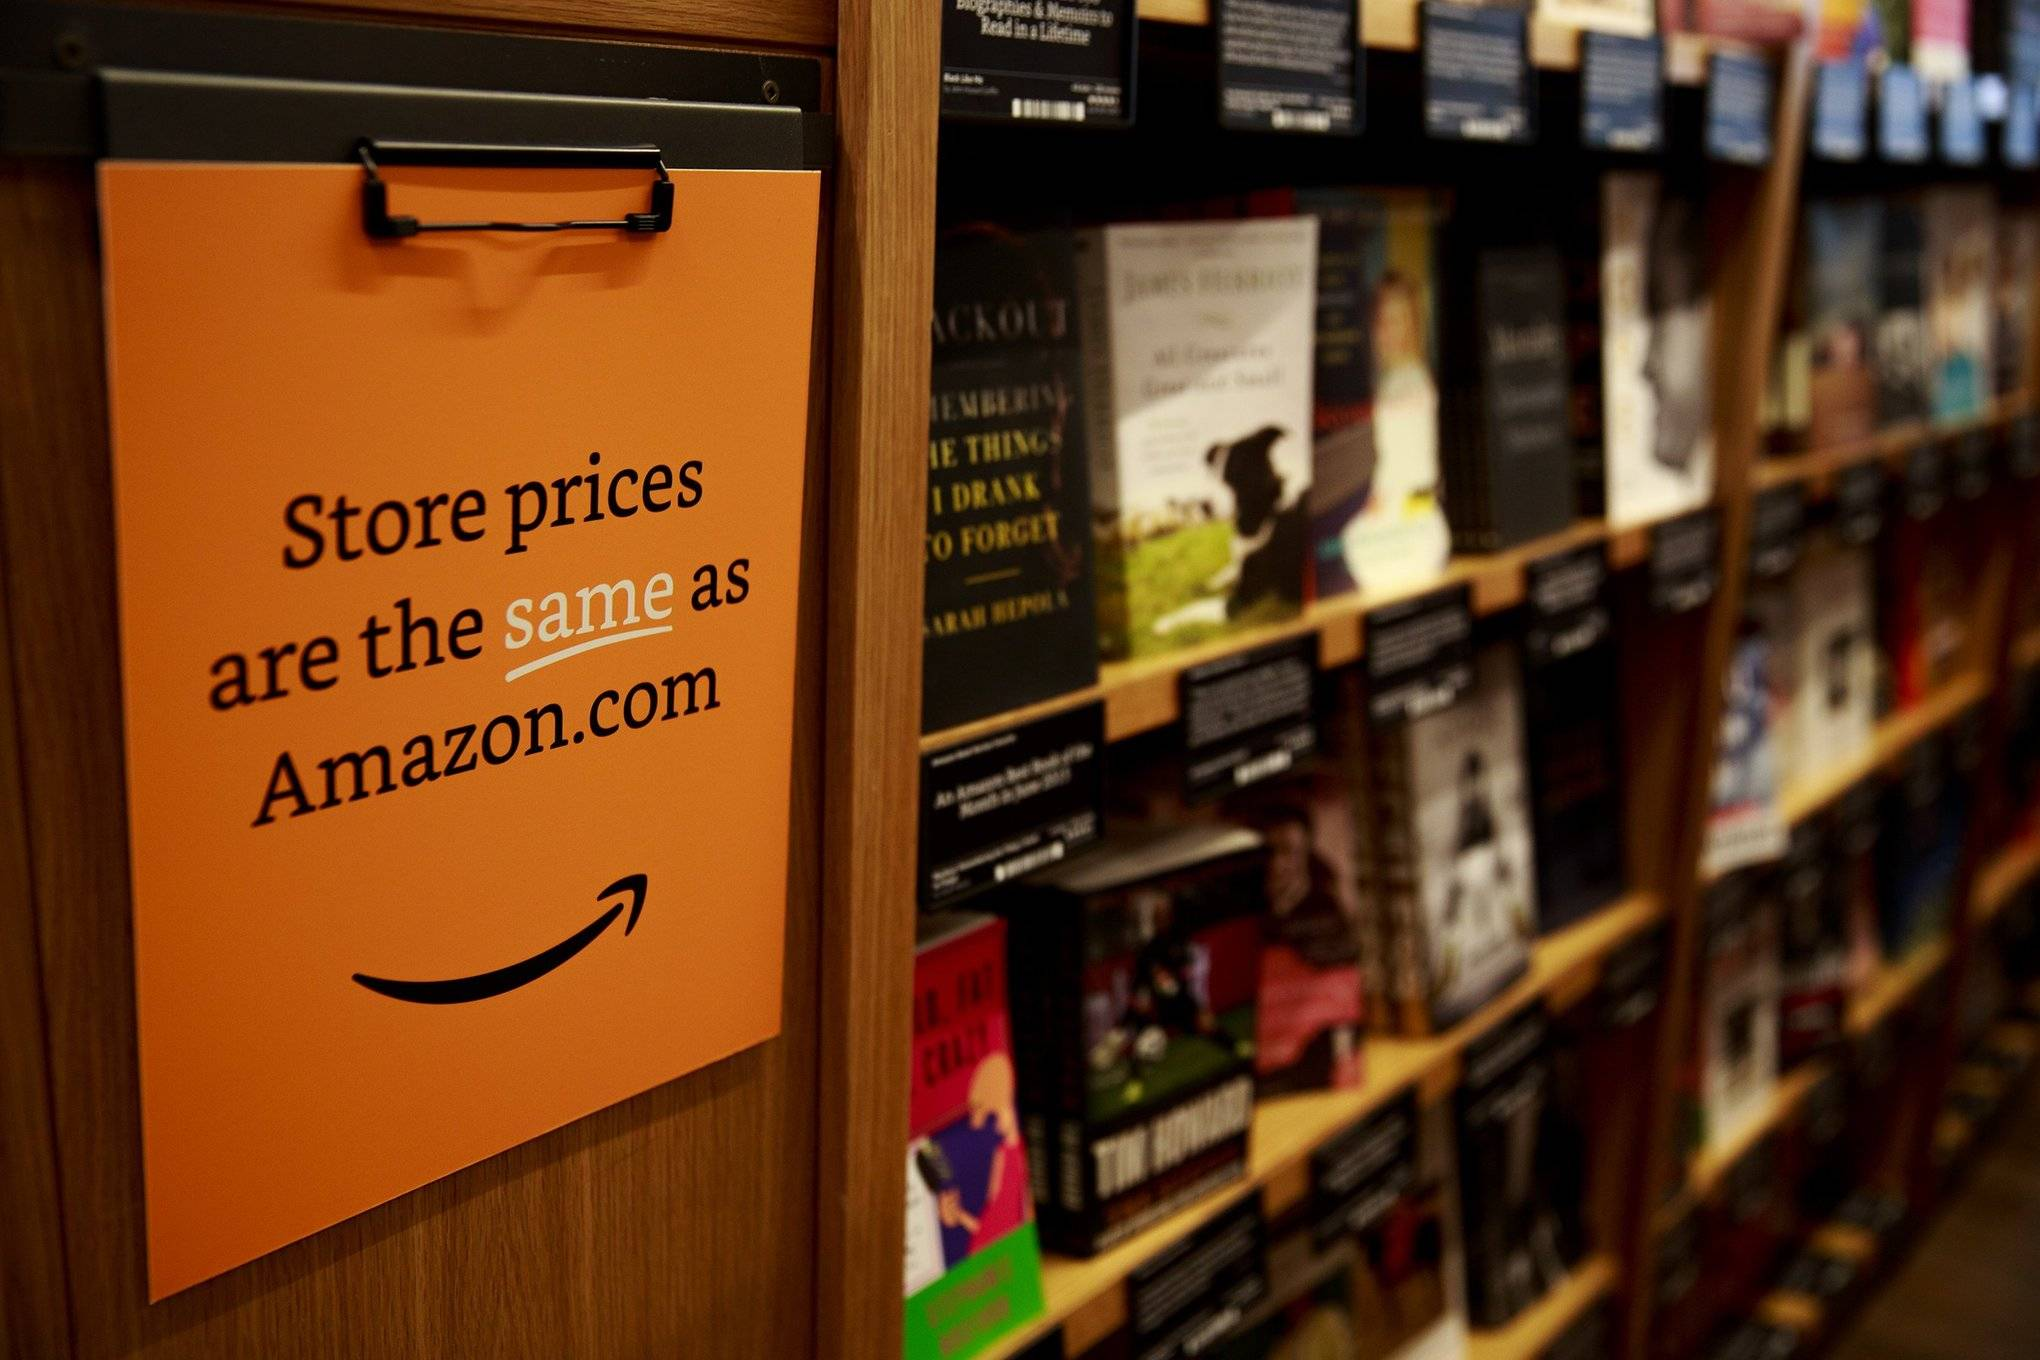 Amazon Books, the company's first brick-and-mortar store, will open tomorrow Tuesday, Nov. 3, 2015 in Seattle's University District.